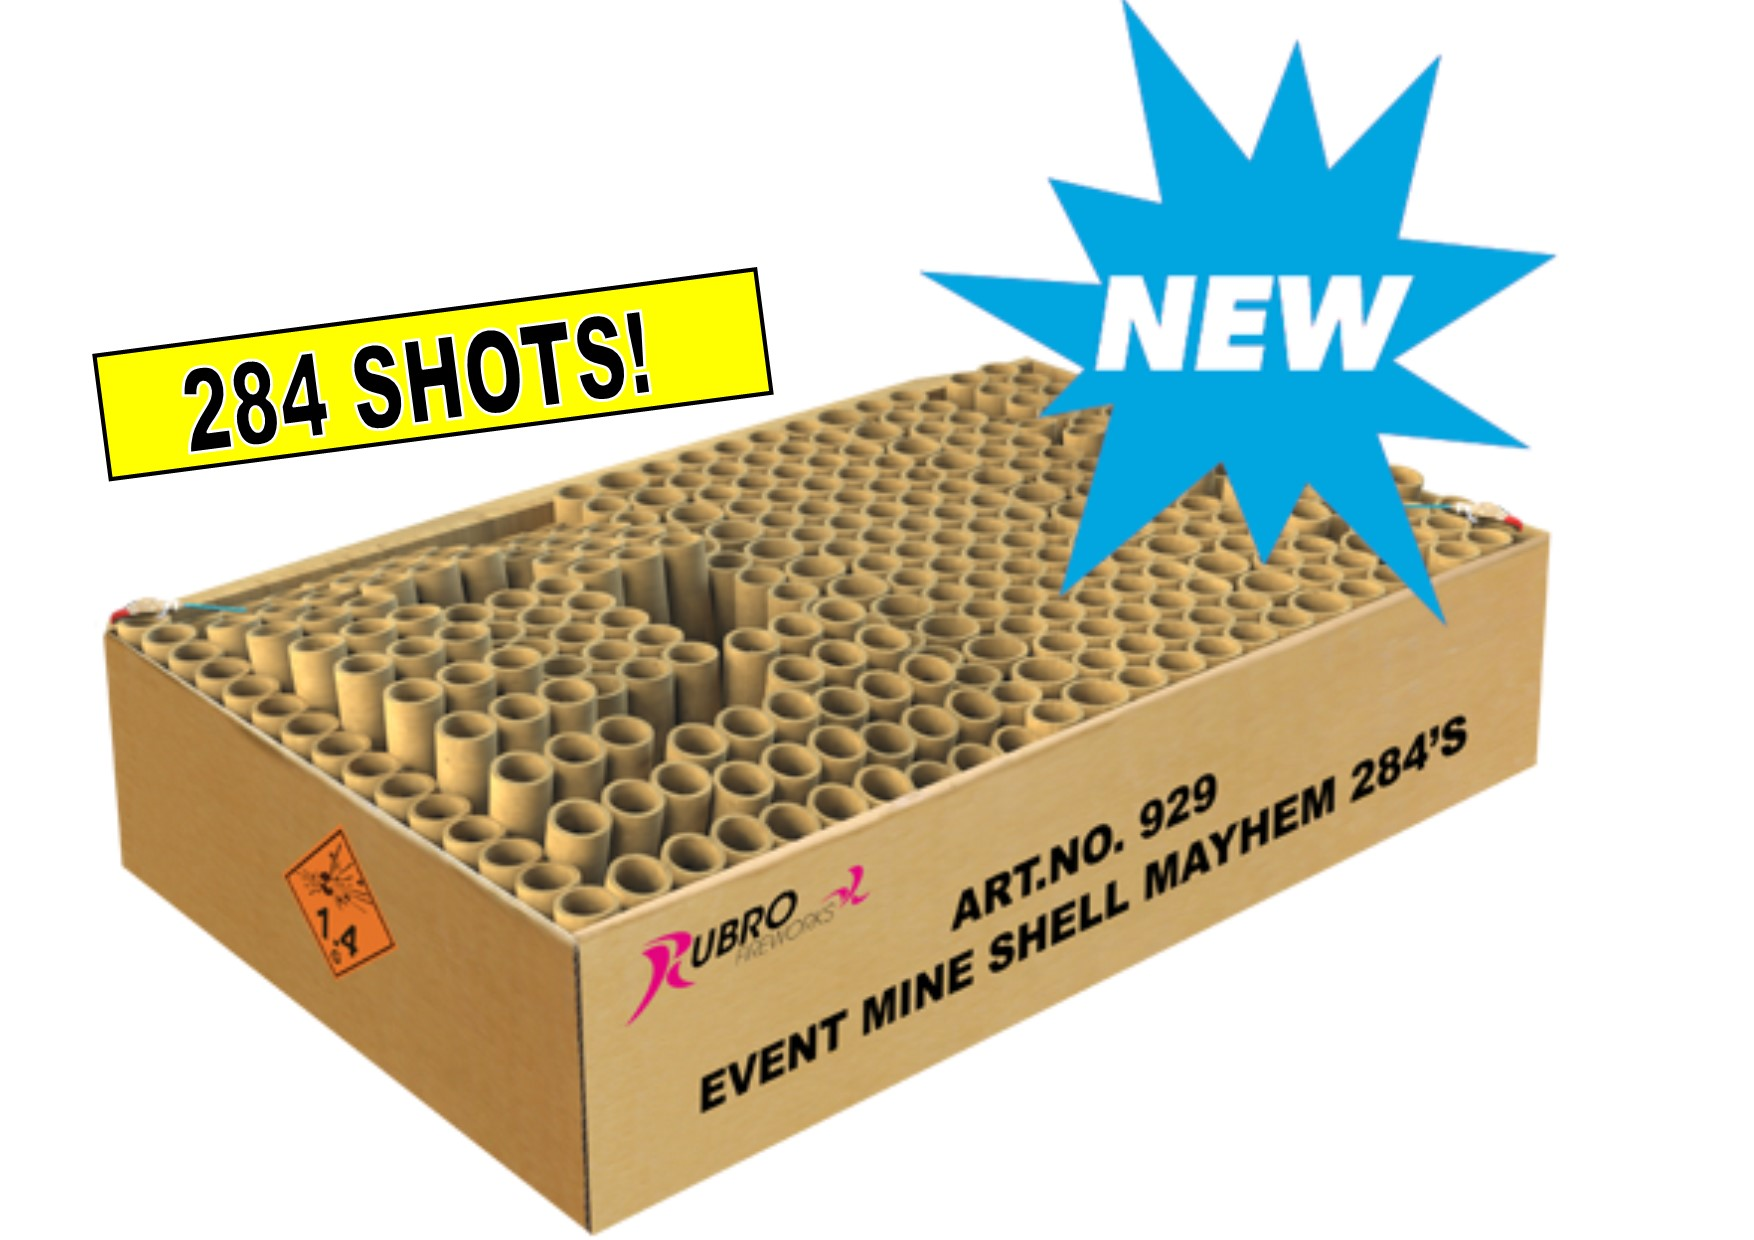 ART. 929 EVENT MINE SHELL MAYHEM, 284 SHOTS NIEUW!